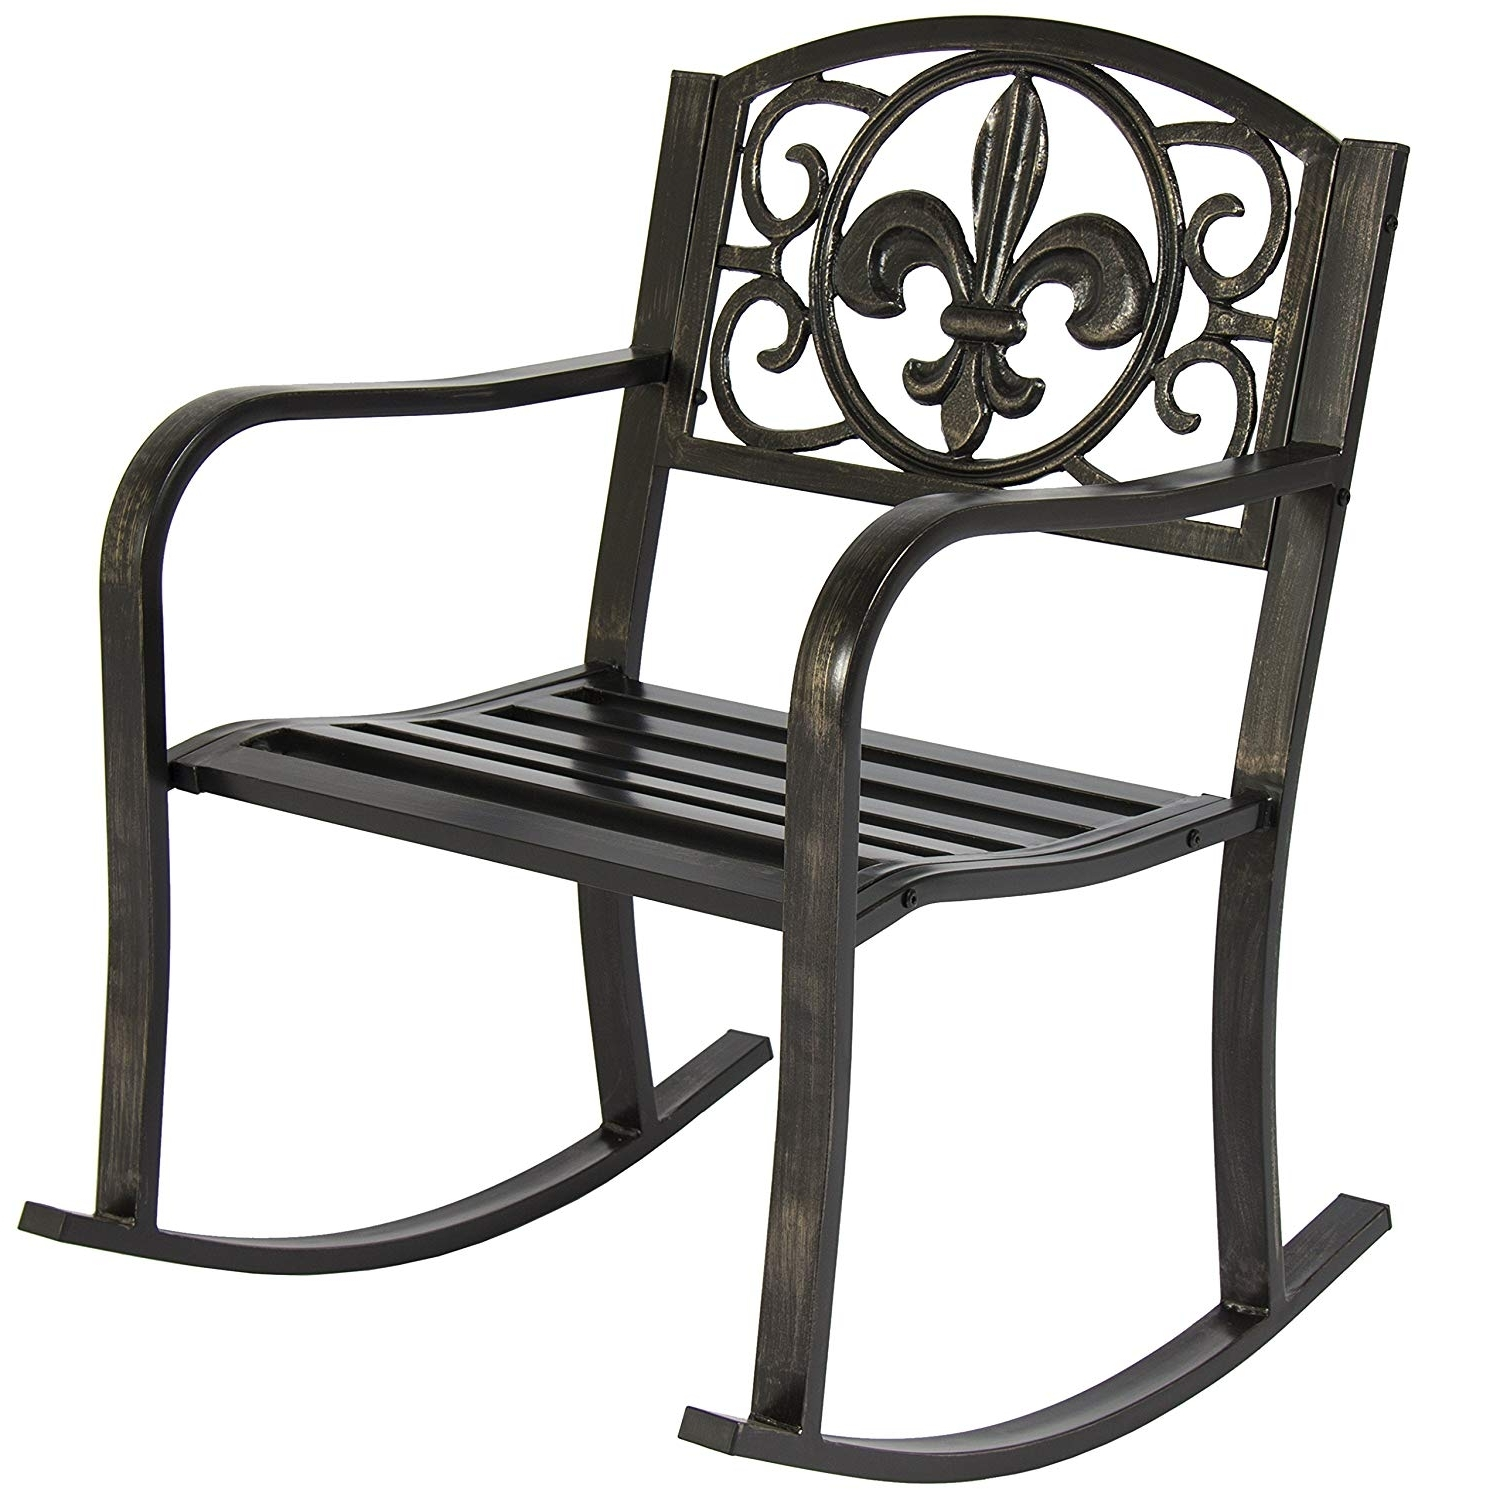 Amazon : Best Choice Products Metal Rocking Chair Seat For Patio In Favorite Patio Metal Rocking Chairs (View 2 of 15)